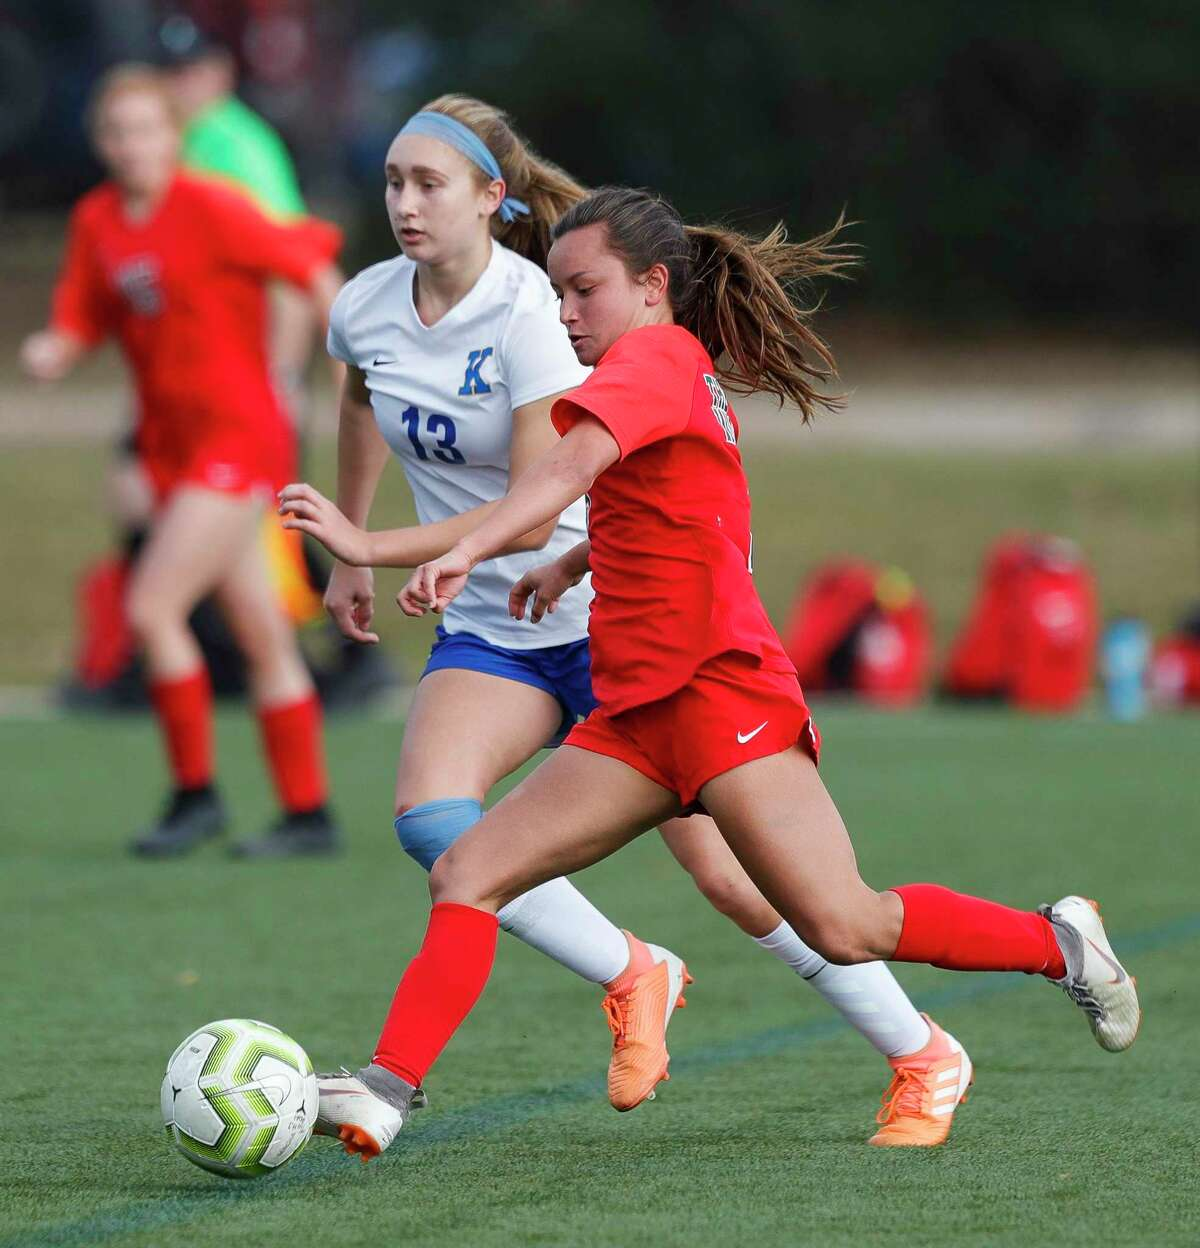 The Woodlands' Katherine Williams (3), shown here earlier this season, scored against Willis Tuesday night.